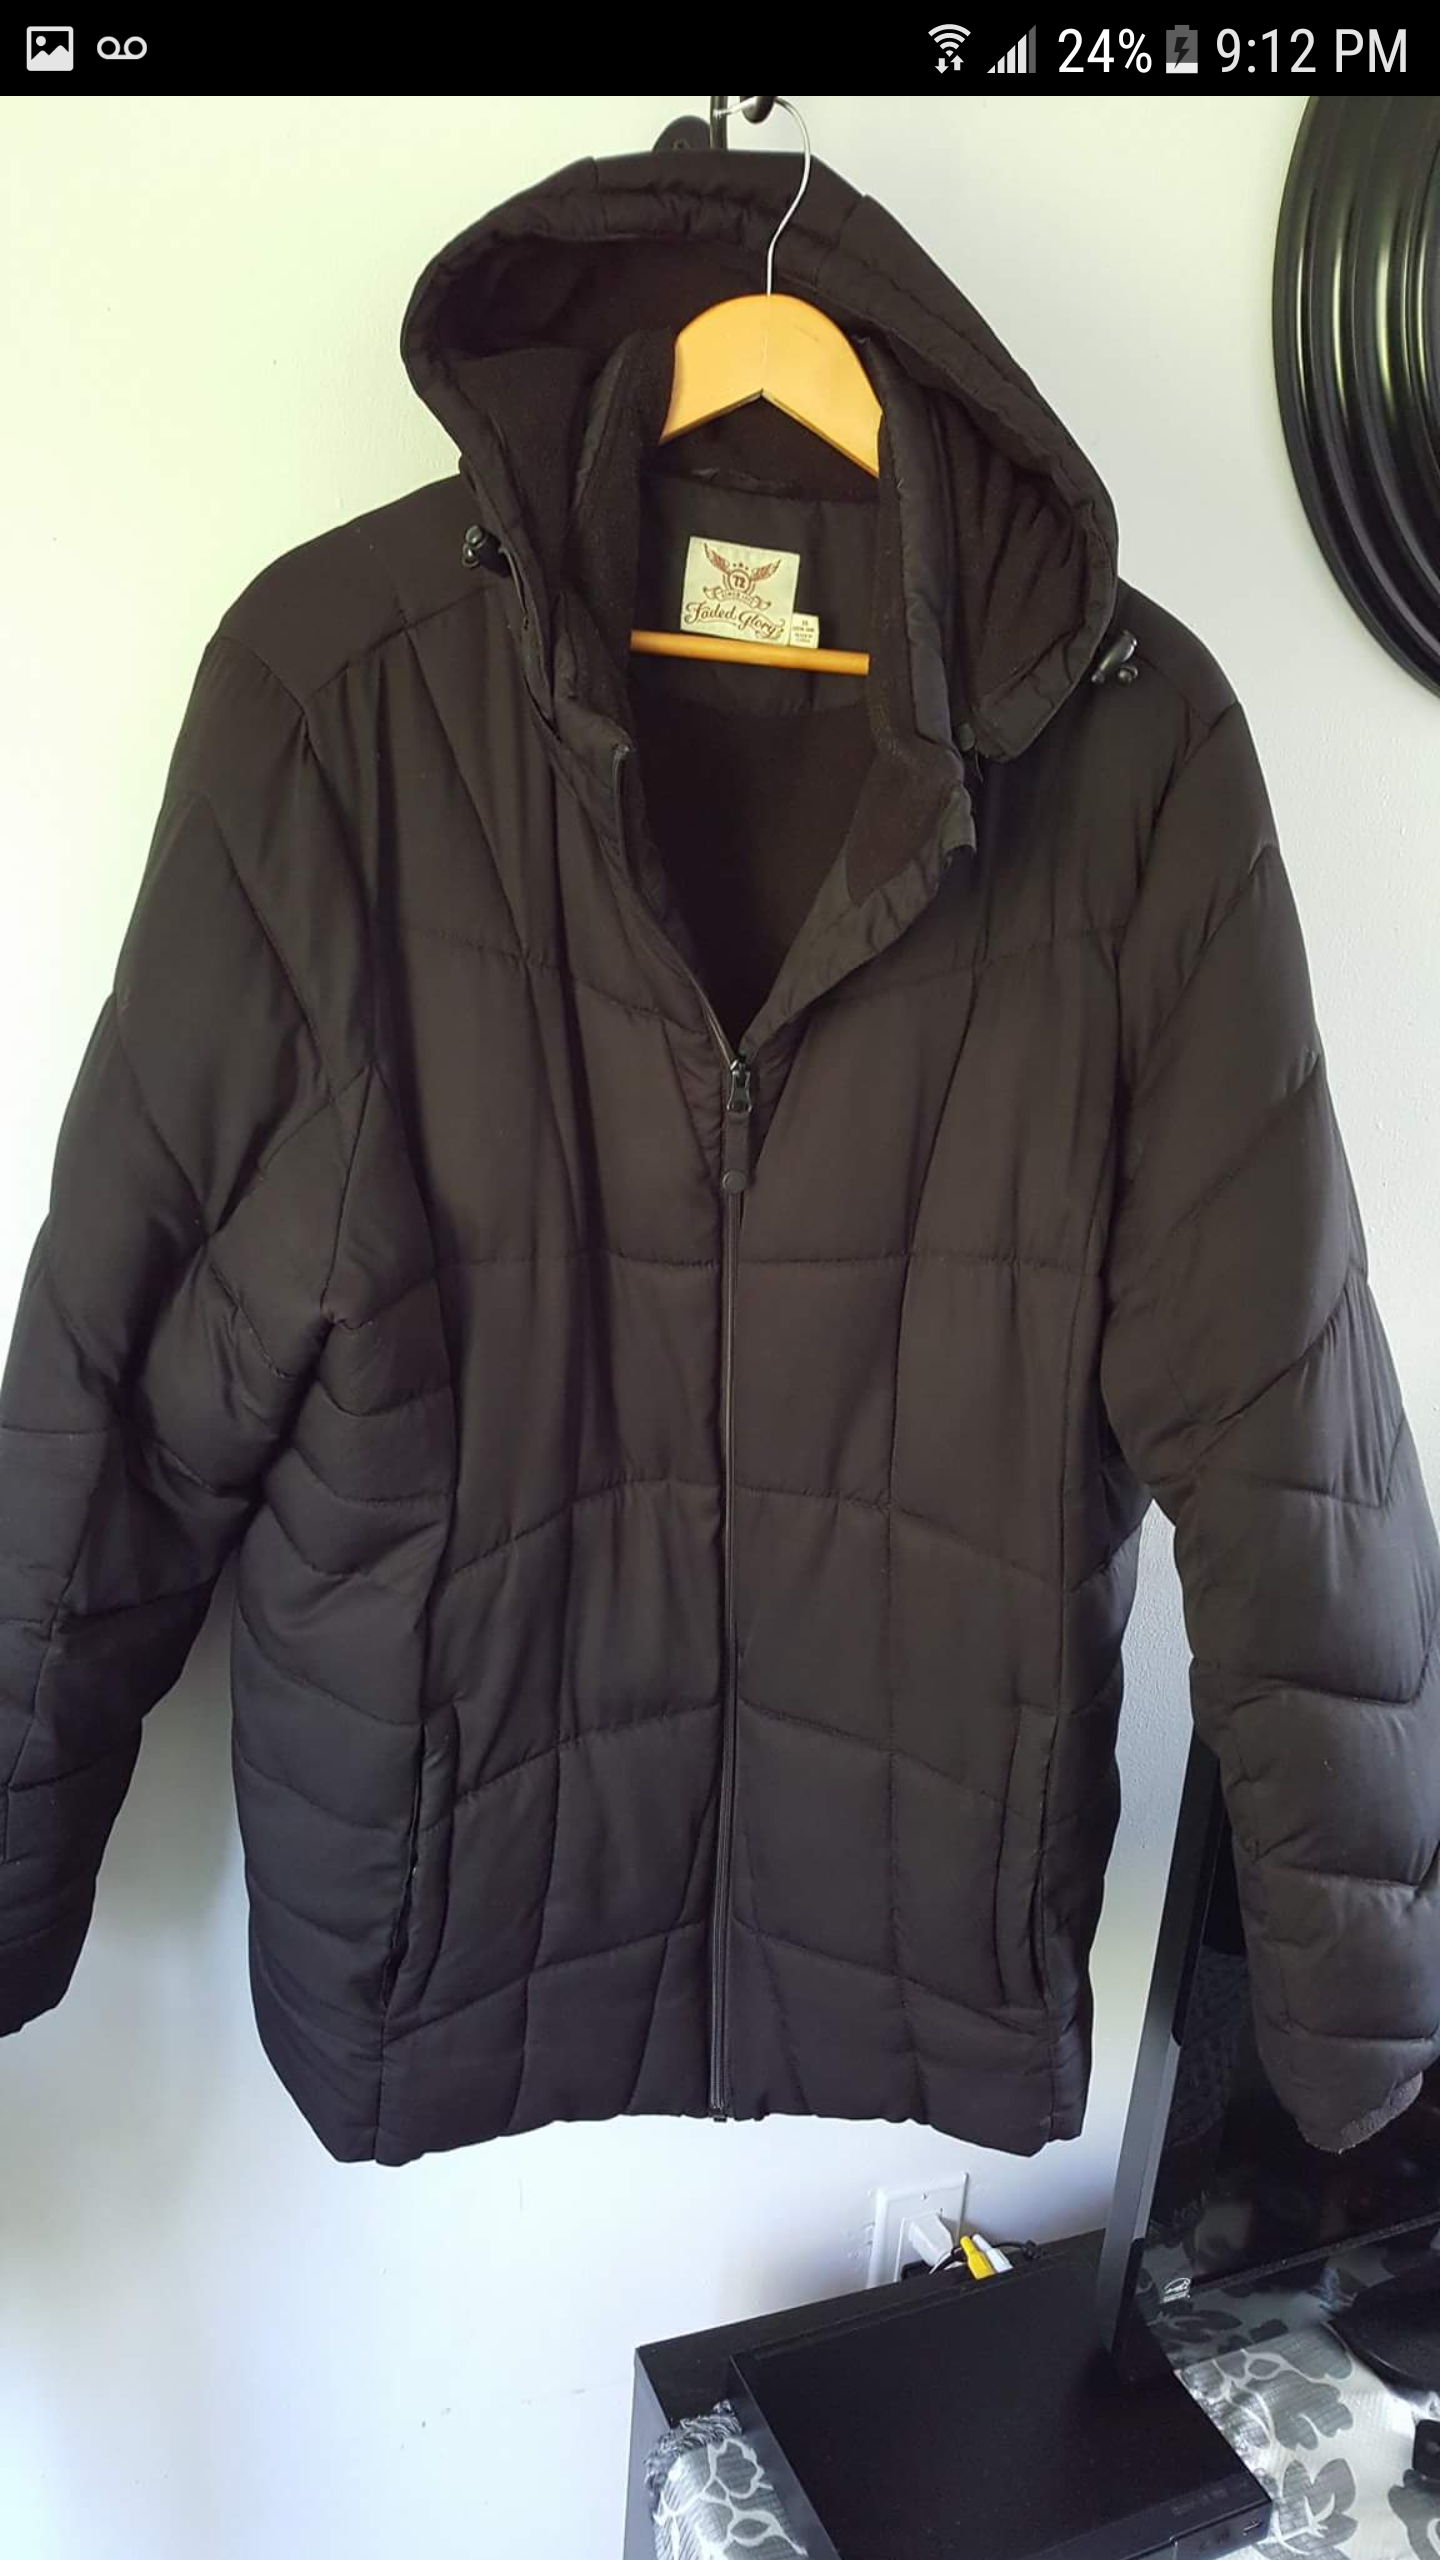 Size 3x Winter Woman's Coat $40.00 Brand is Faded Glory